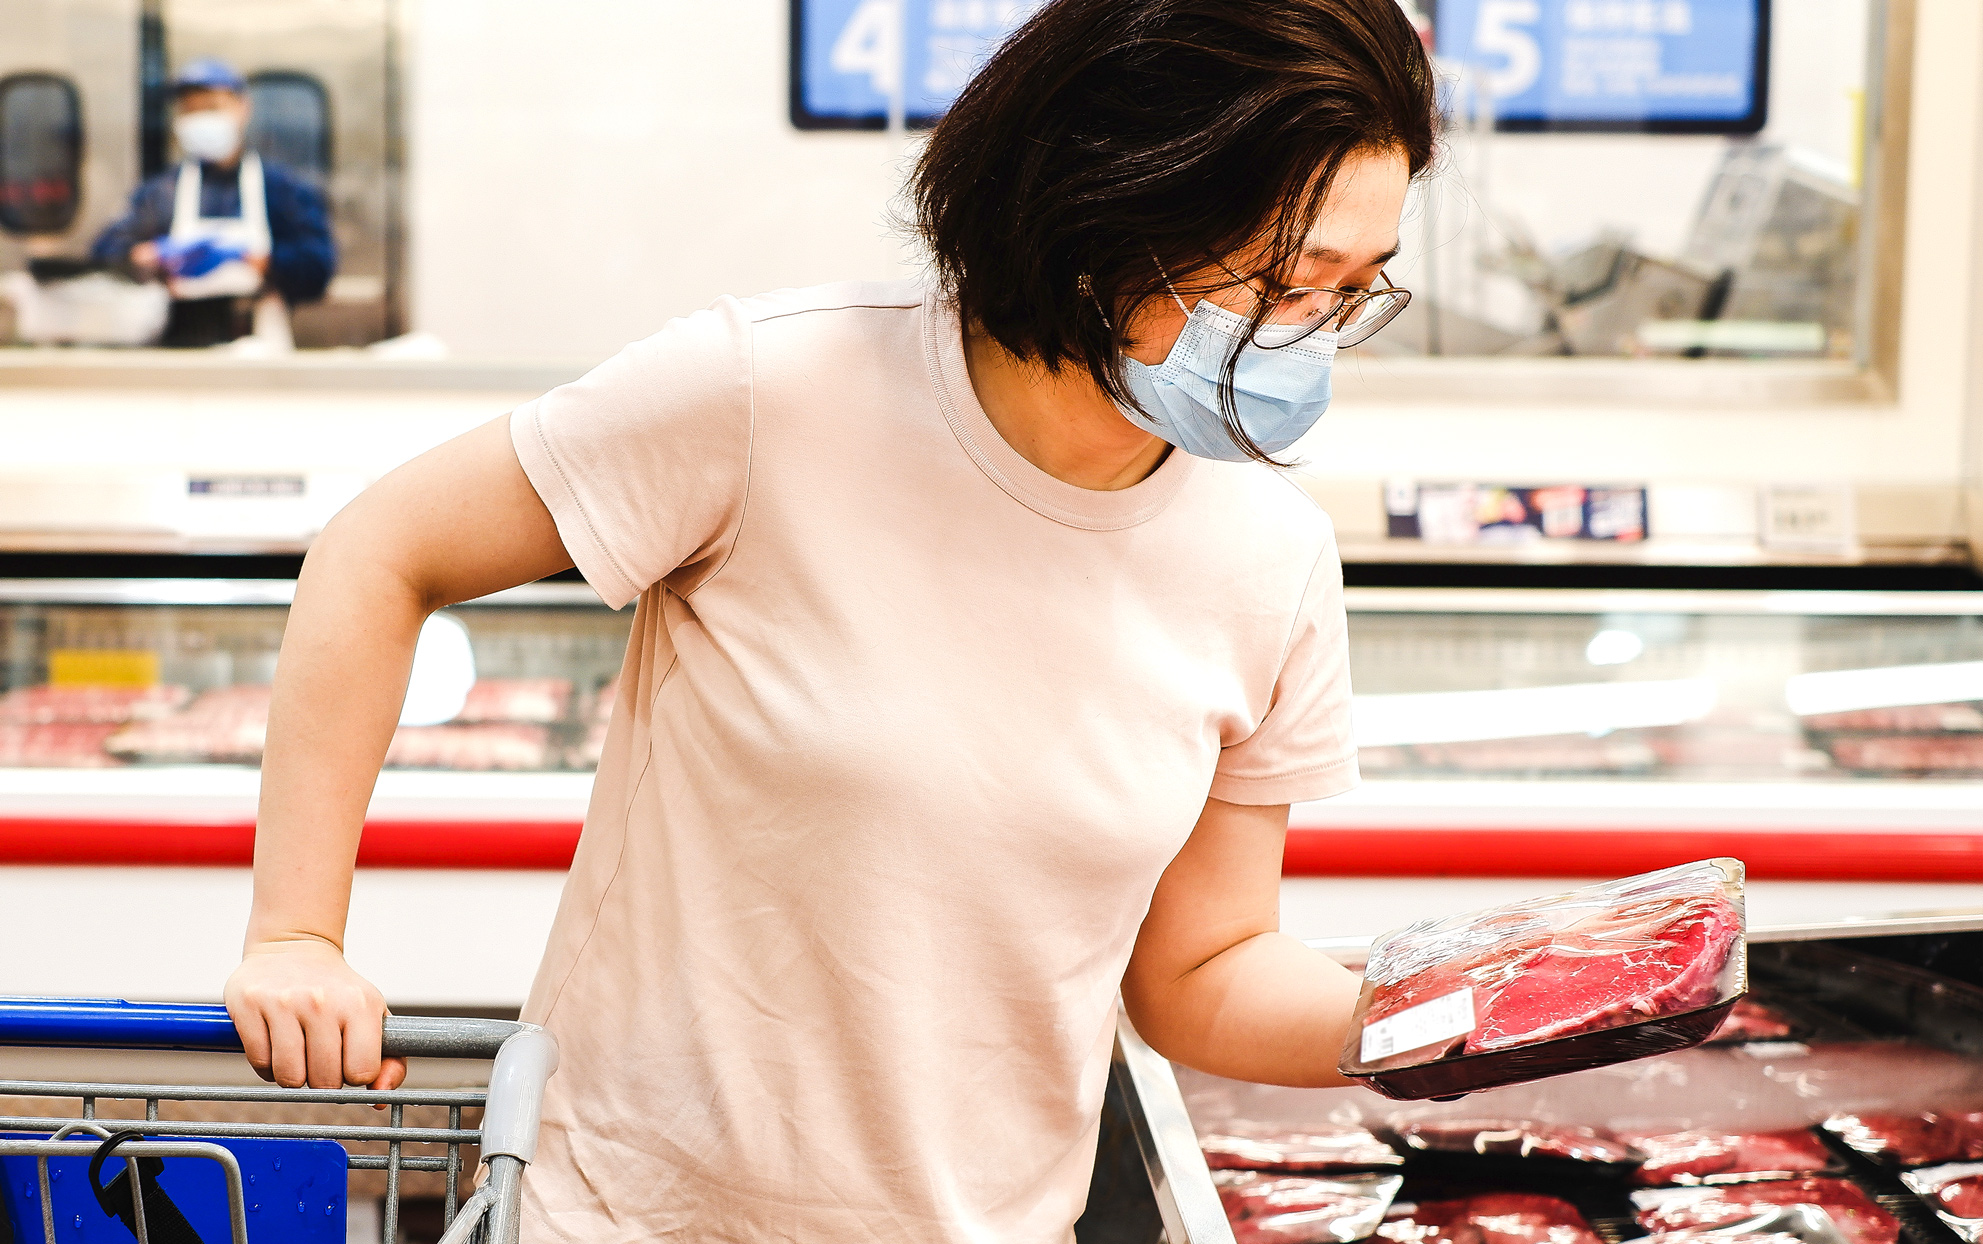 woman shopping with face mask on in grocery store